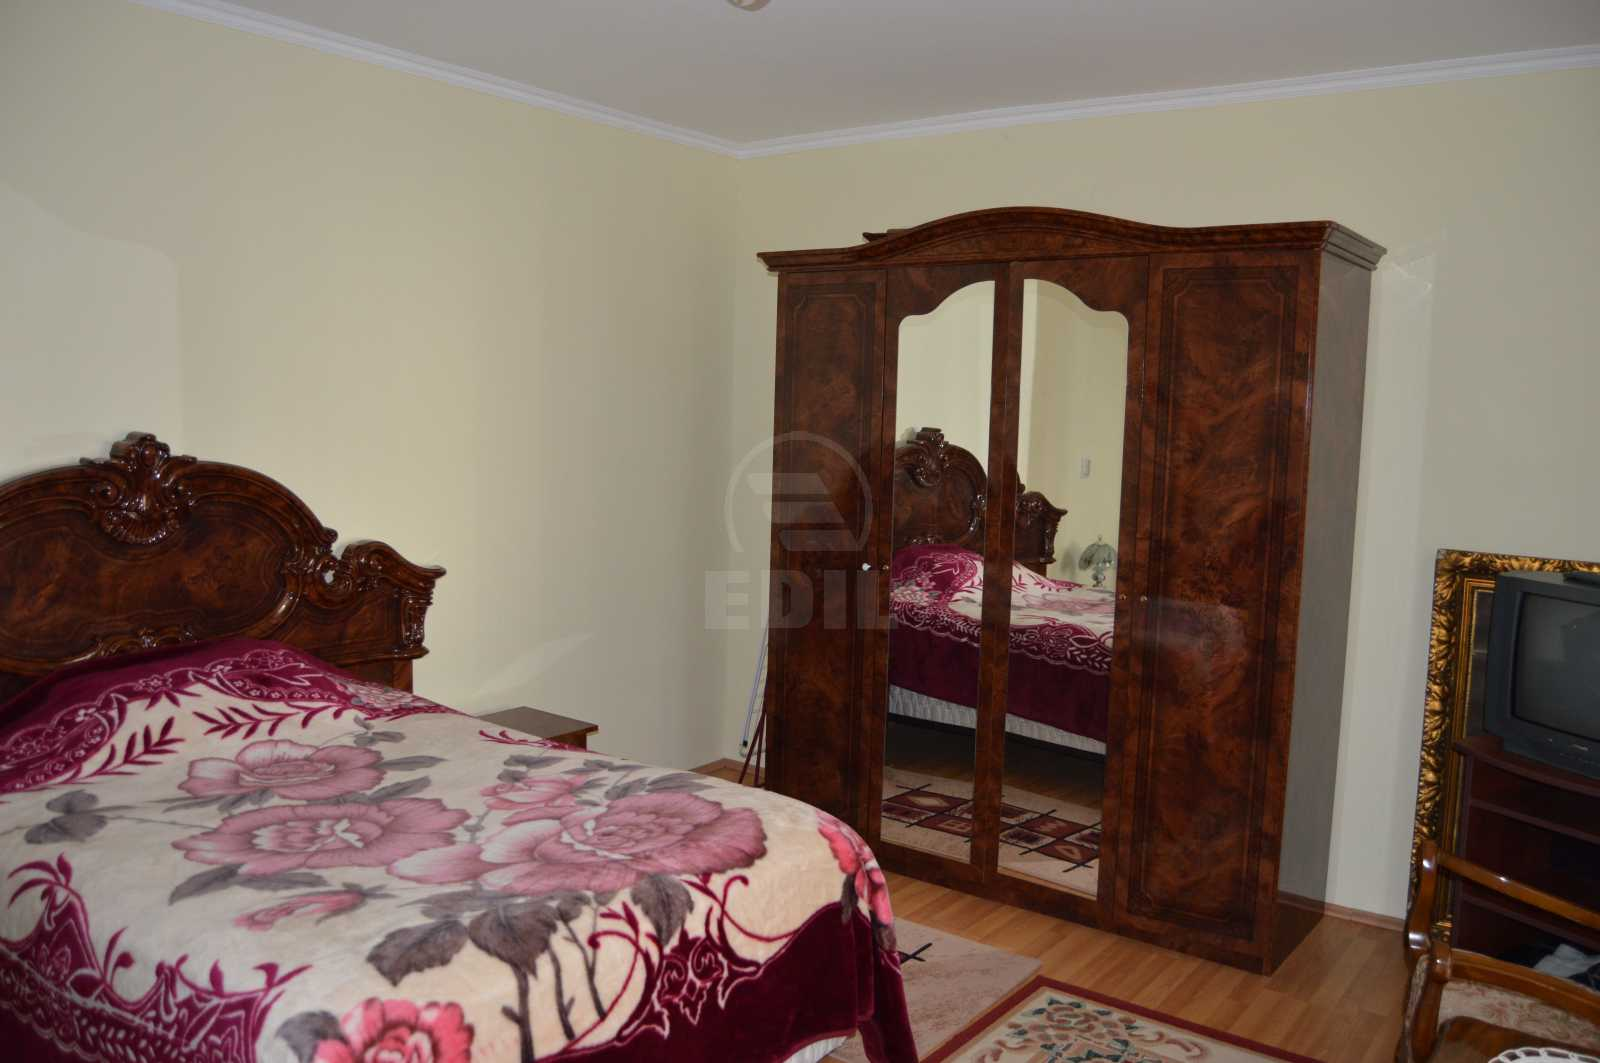 House for sale 3 rooms, CACJ284246-4